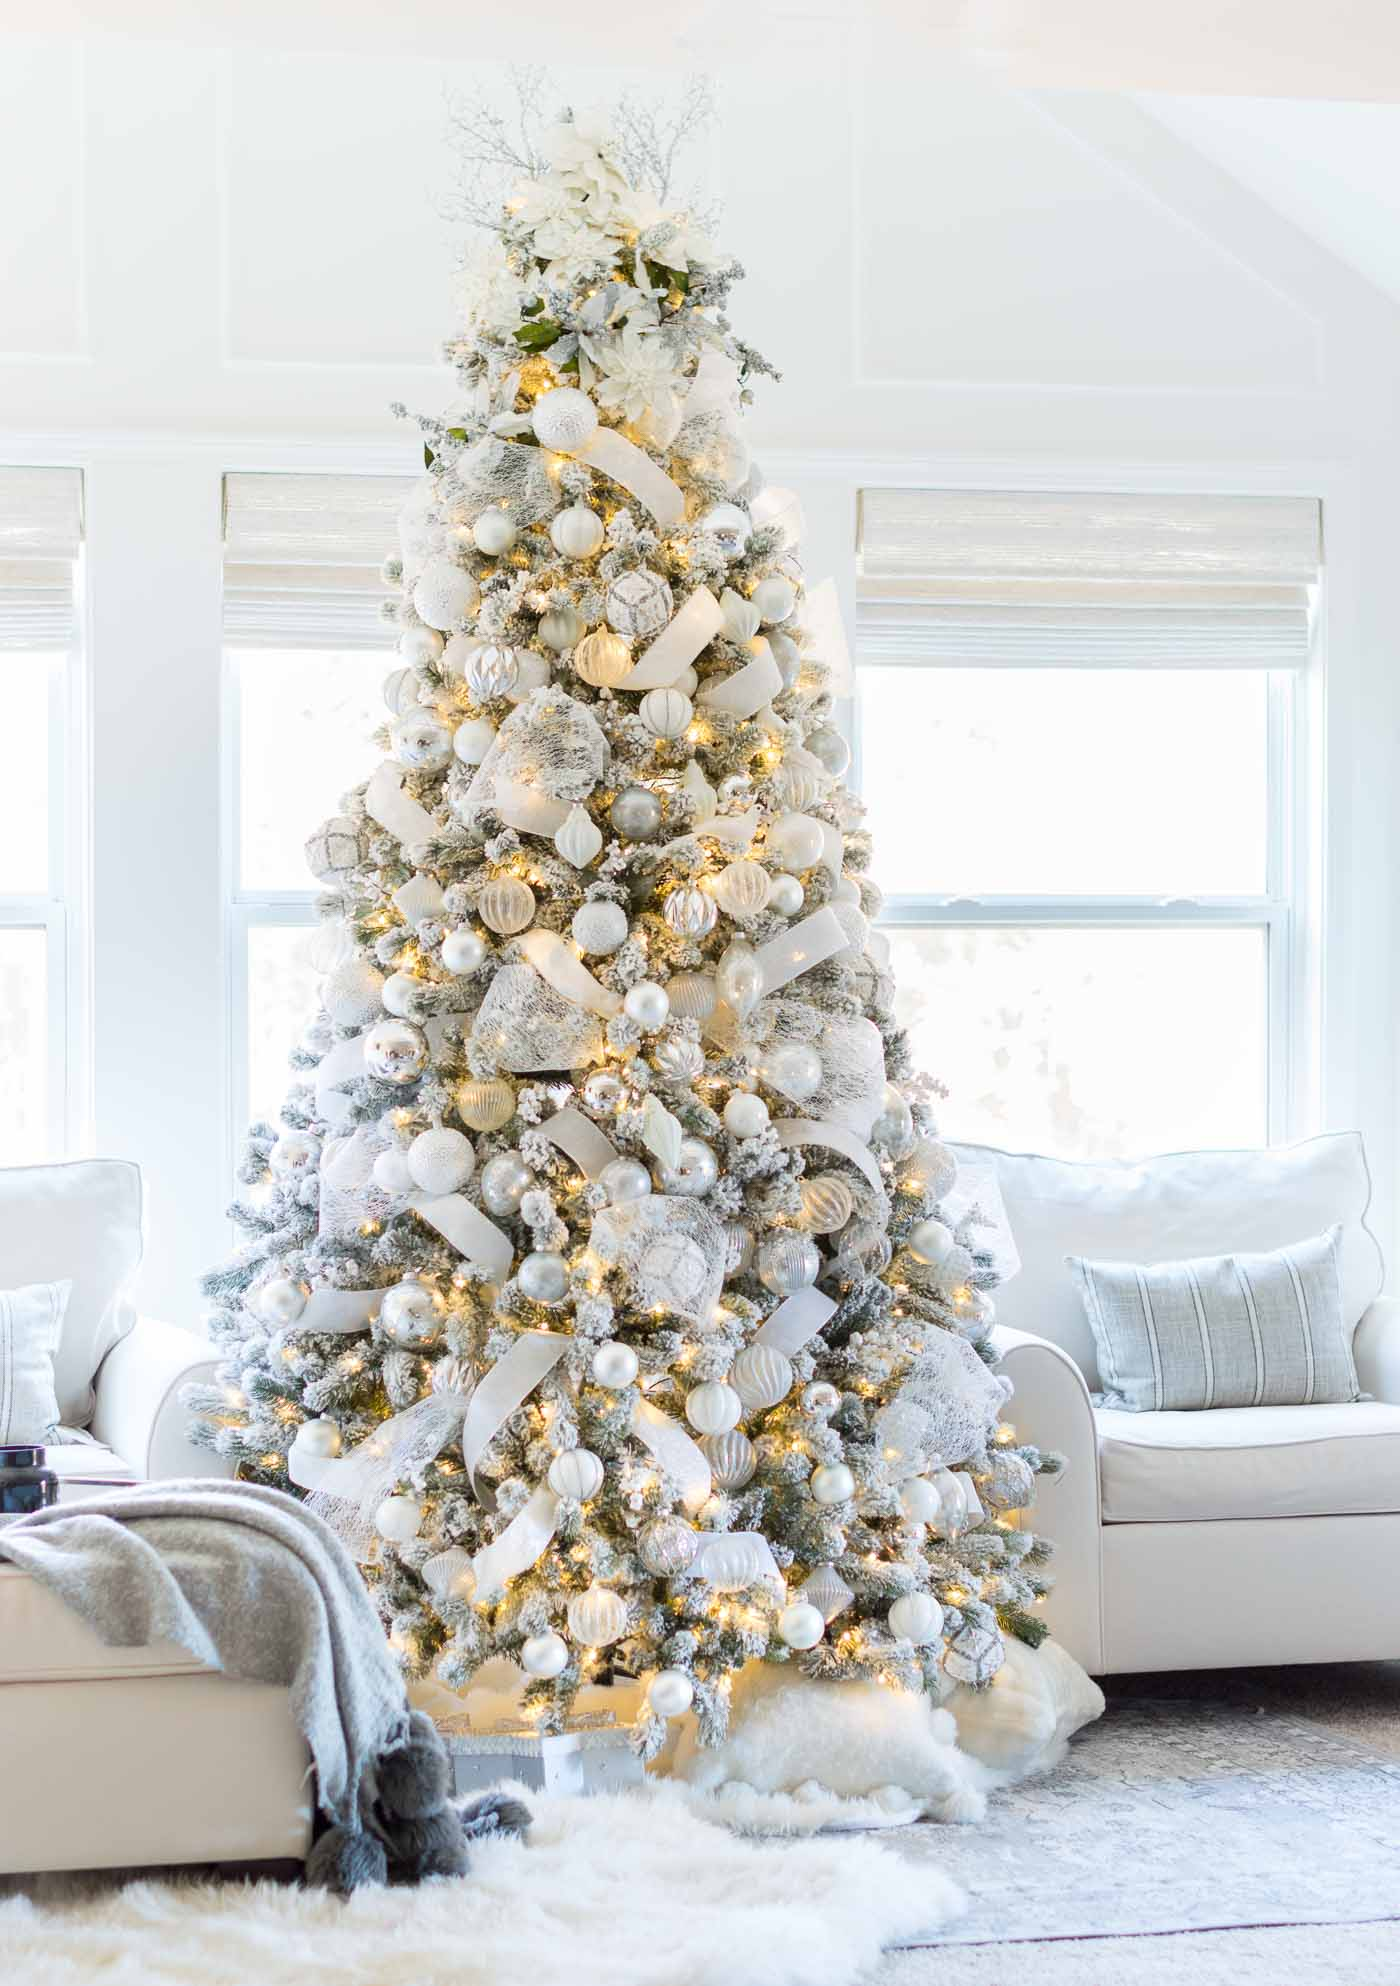 How to decorate a white snow flocked Christmas tree